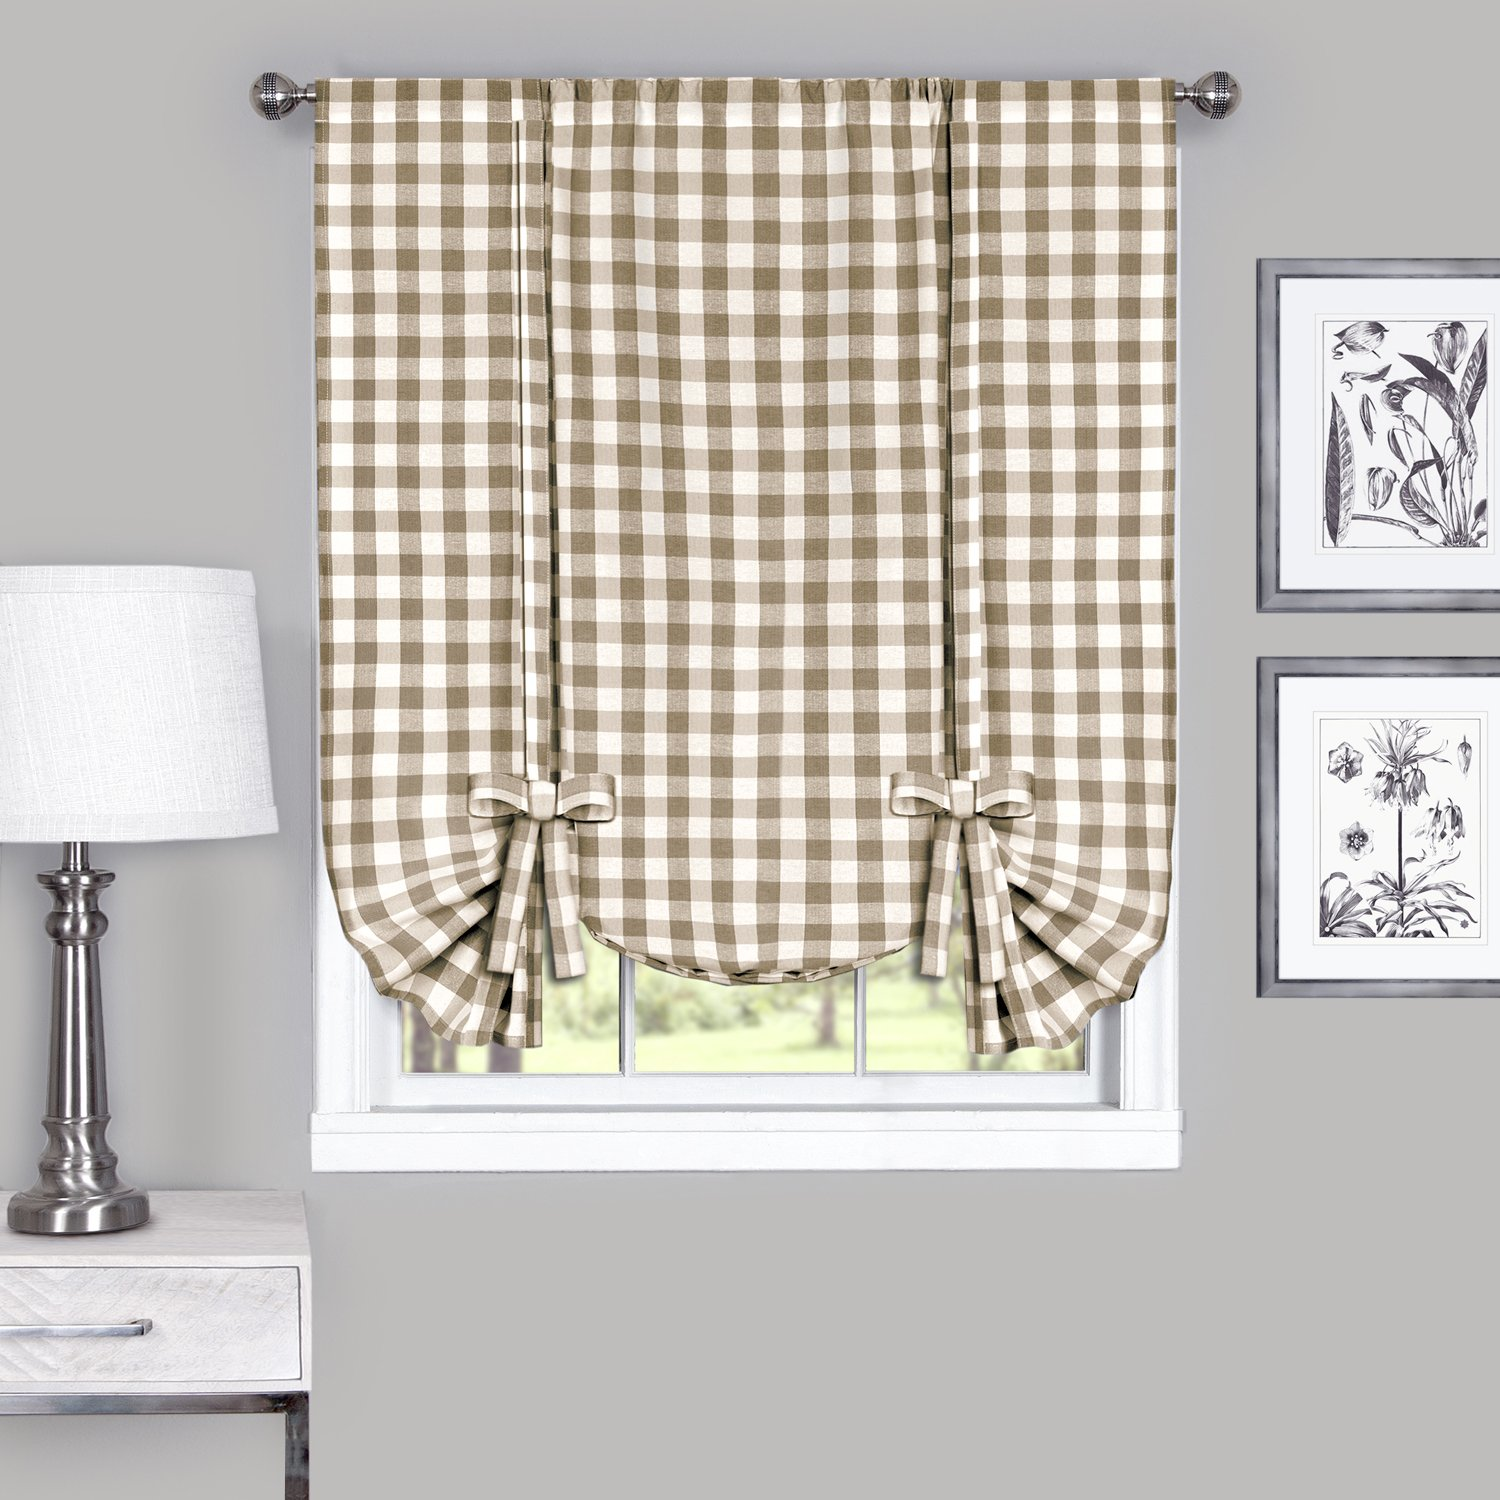 Achim Home Furnishings BCPN63BW12 Buffalo Check Window Curtain Panel, 42